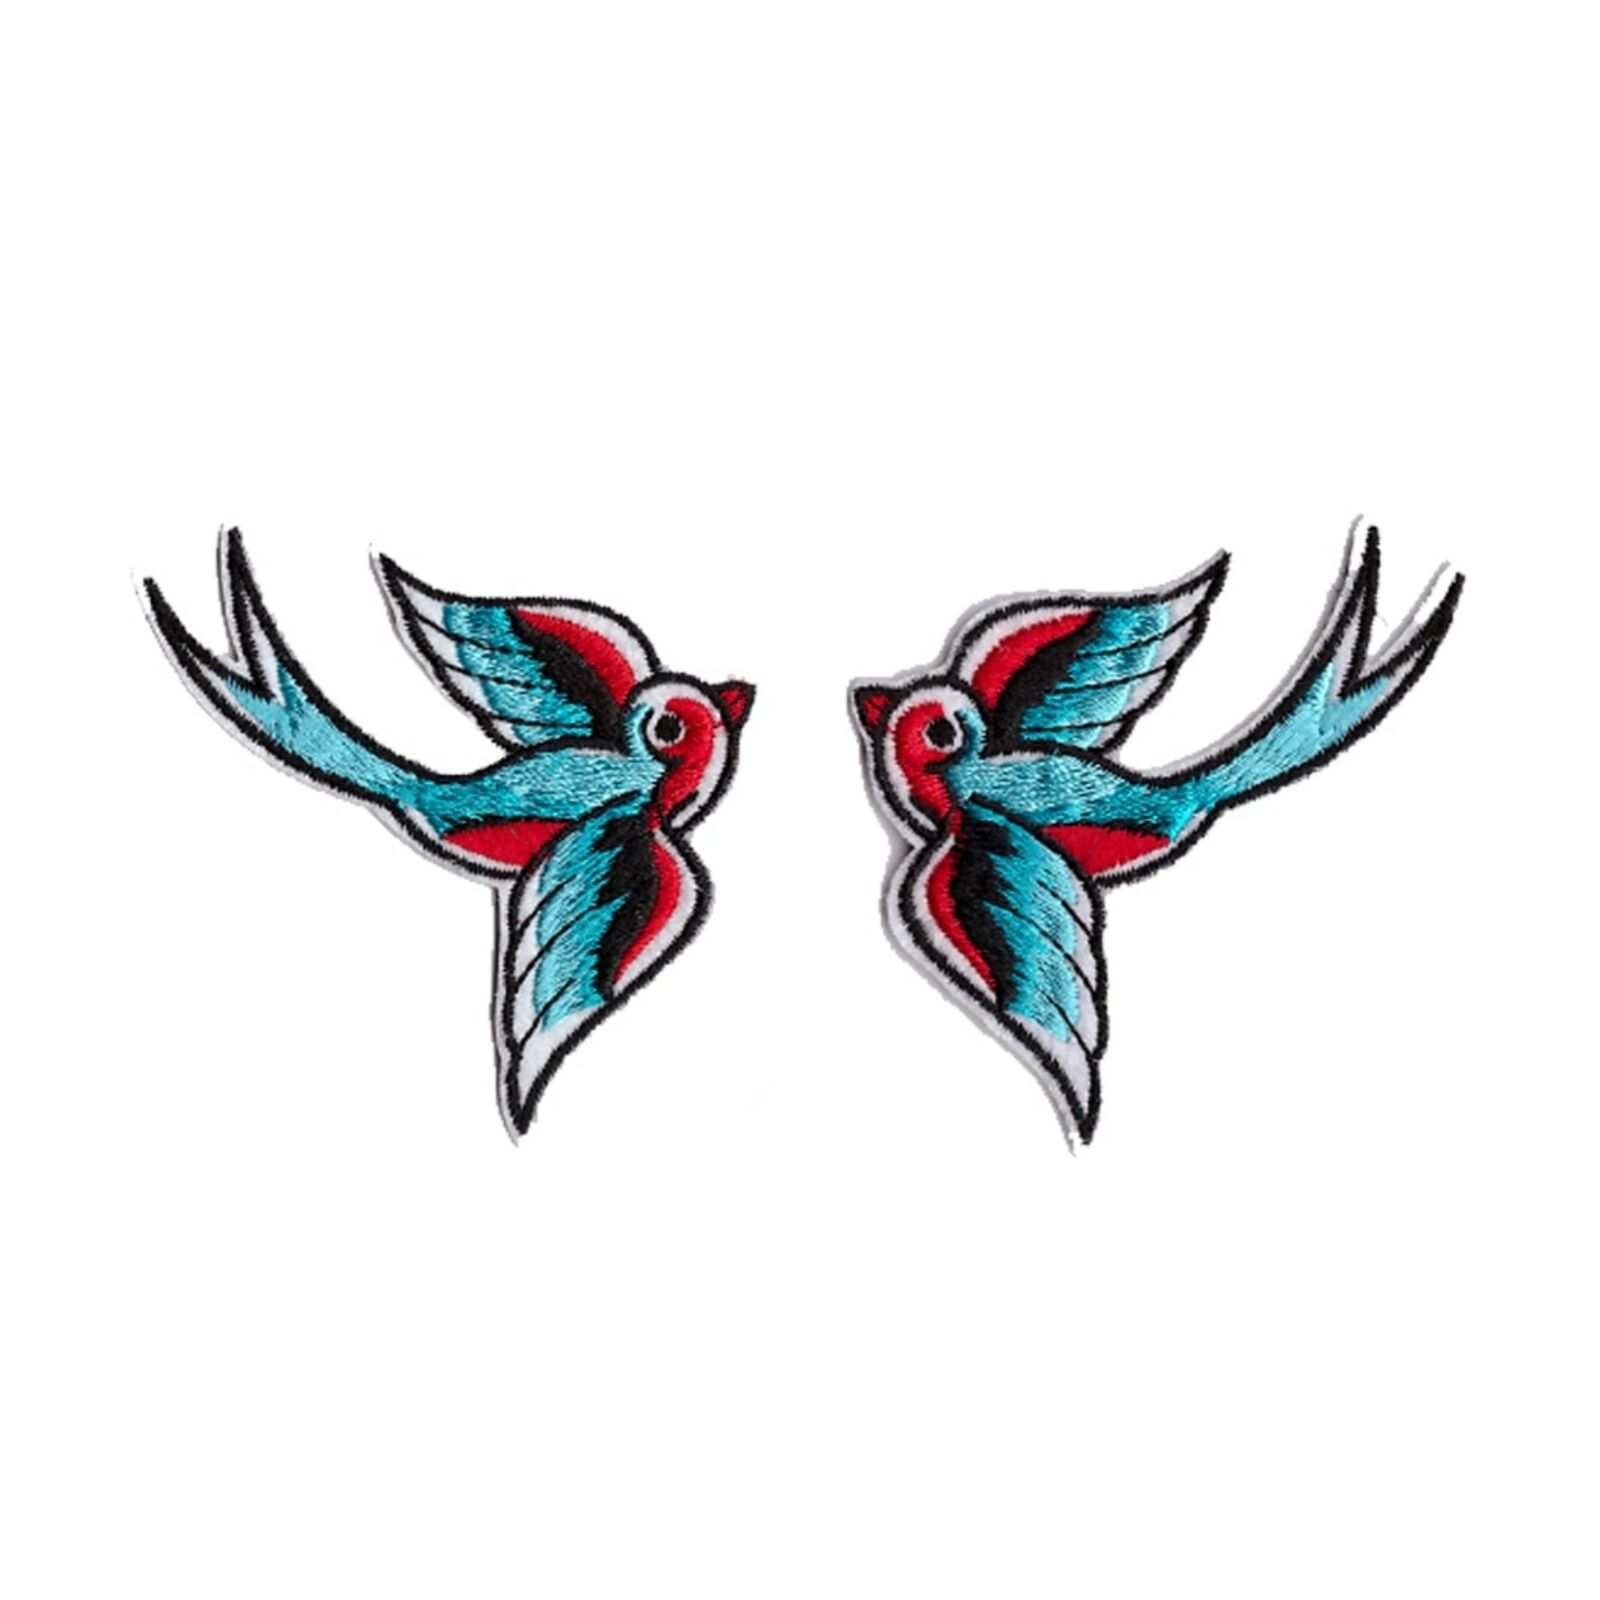 SWALLOW PATCH Embroidered Iron On ROCKABILLY BIRD PIN-UP TATTOO ROCK N/' ROLL NEW